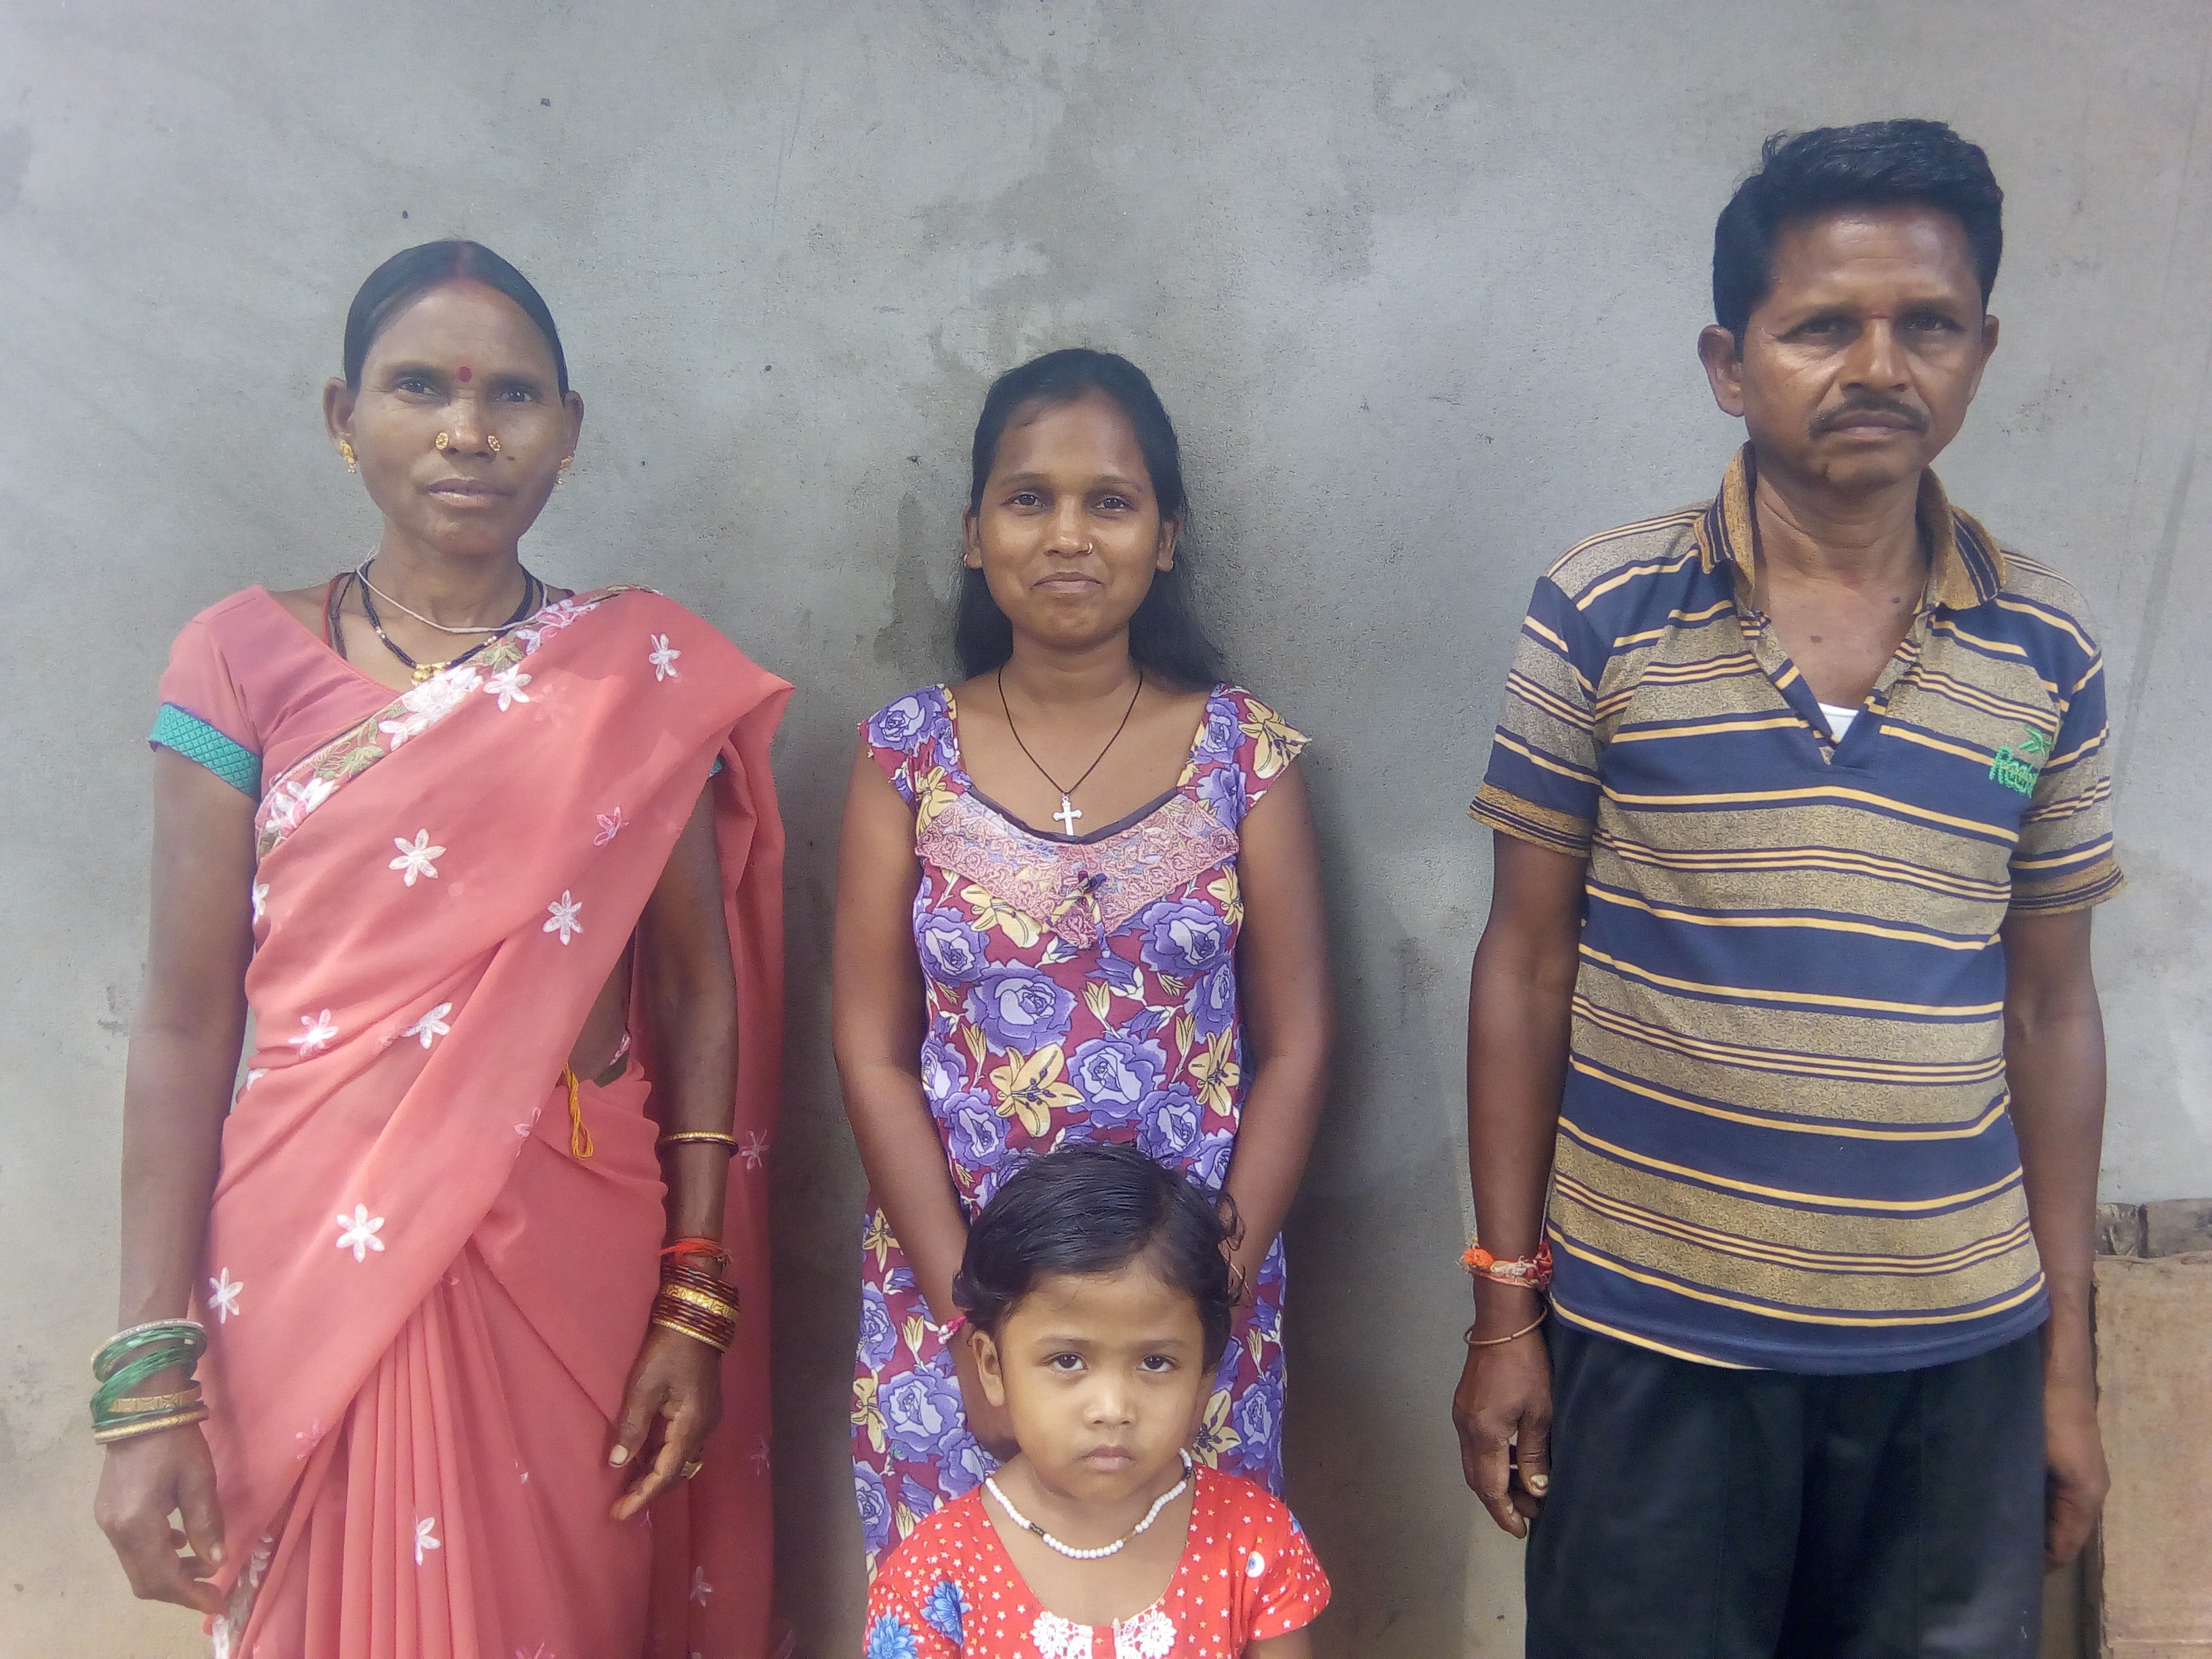 A family of 4 individuals starting with the wife, daughter and father from left to right and a younger daughter in from.